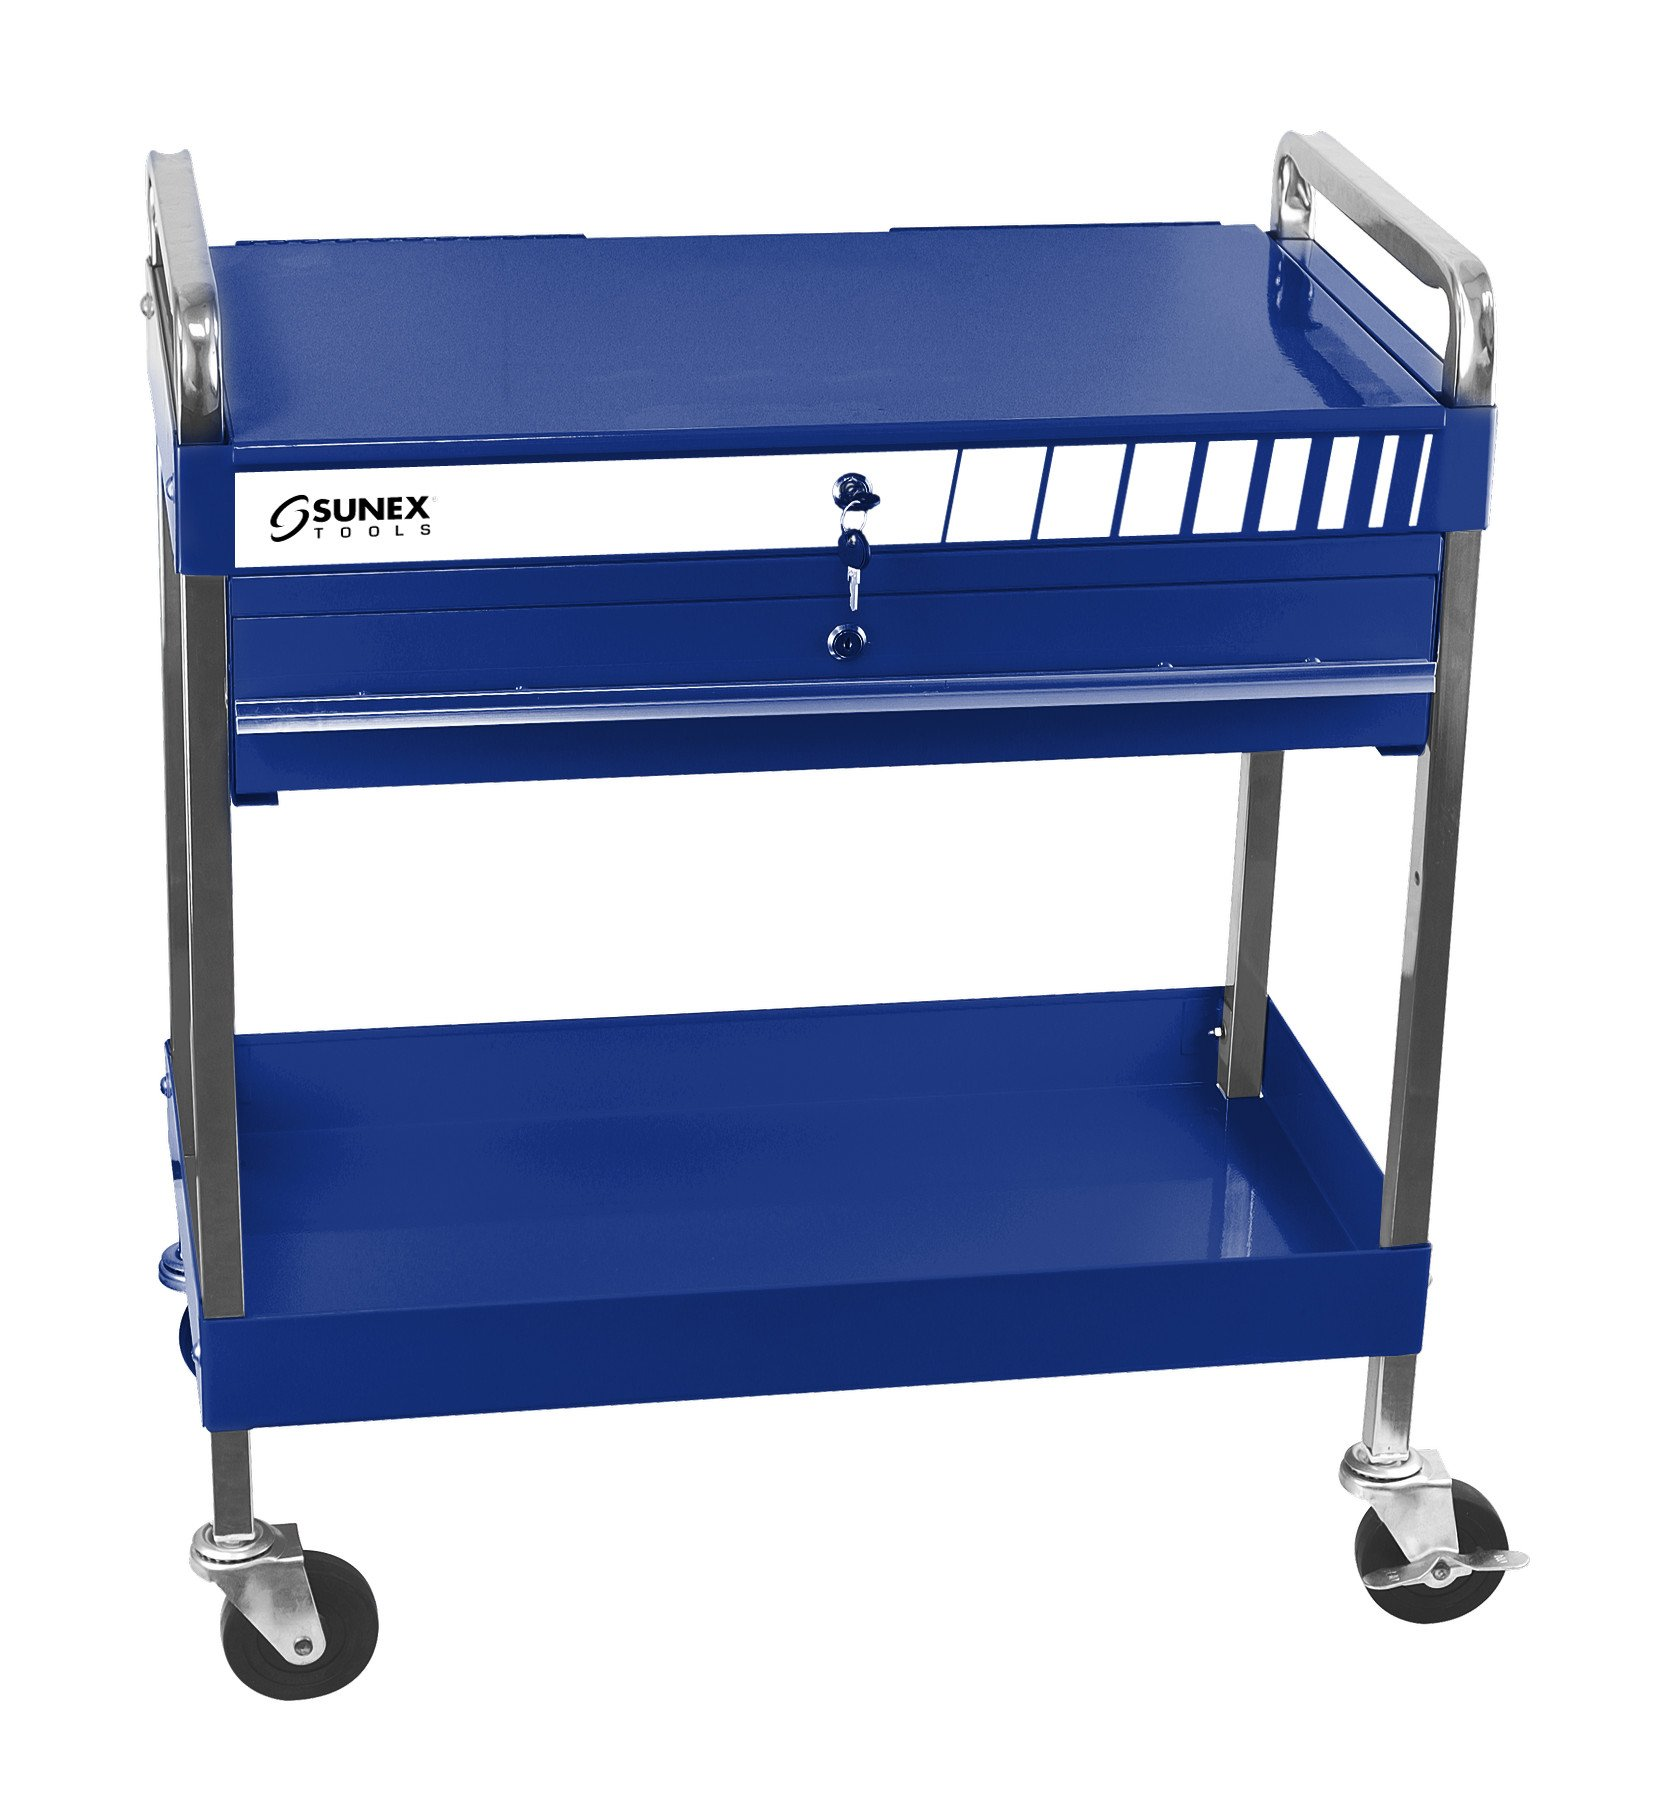 Sunex 8013ABL Sunex 8013ABL Service Cart with Locking Top and Drawer, Blue